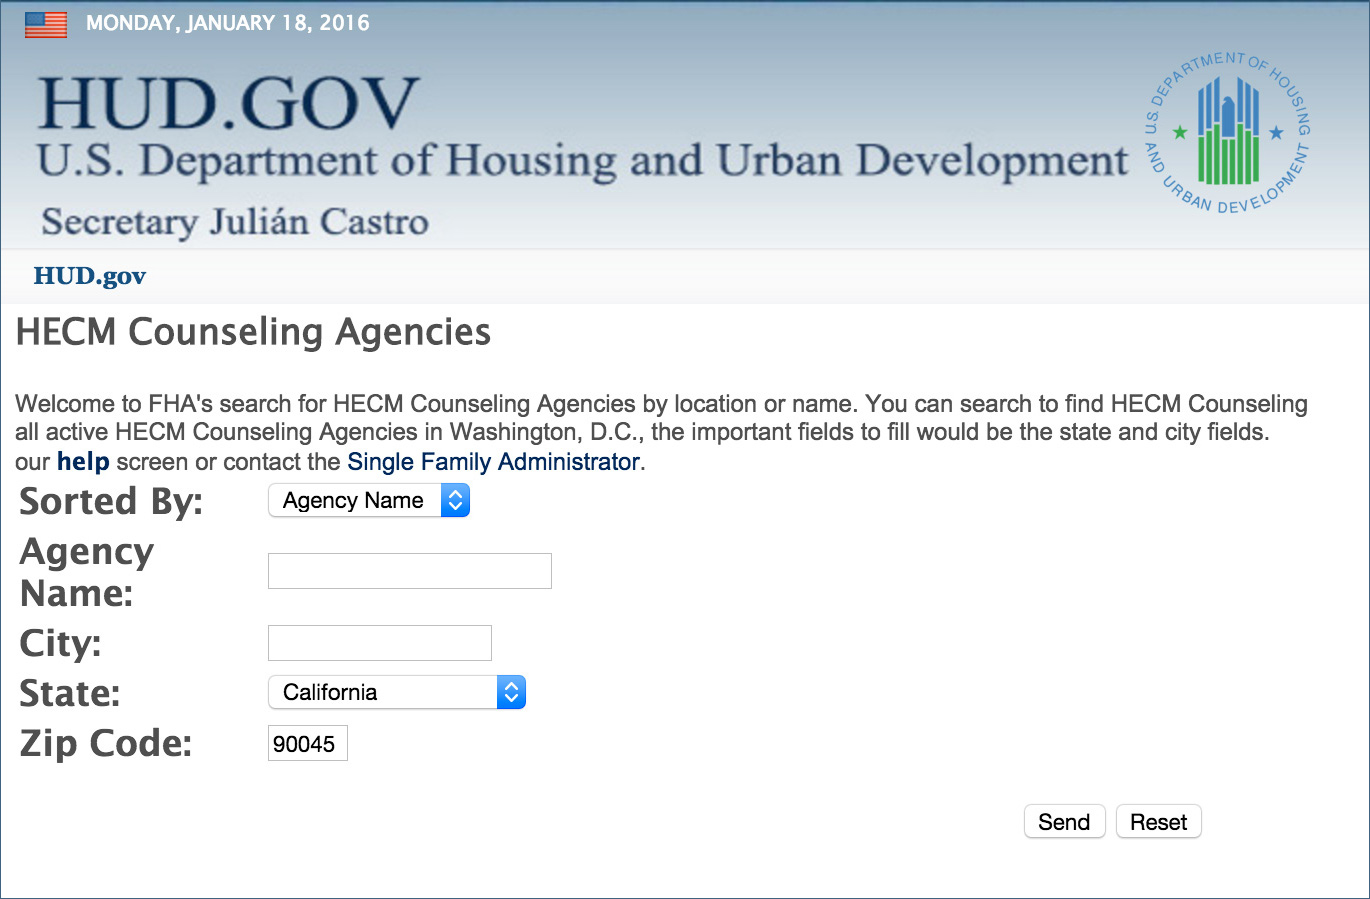 housing of urban development HECM counseling agencies